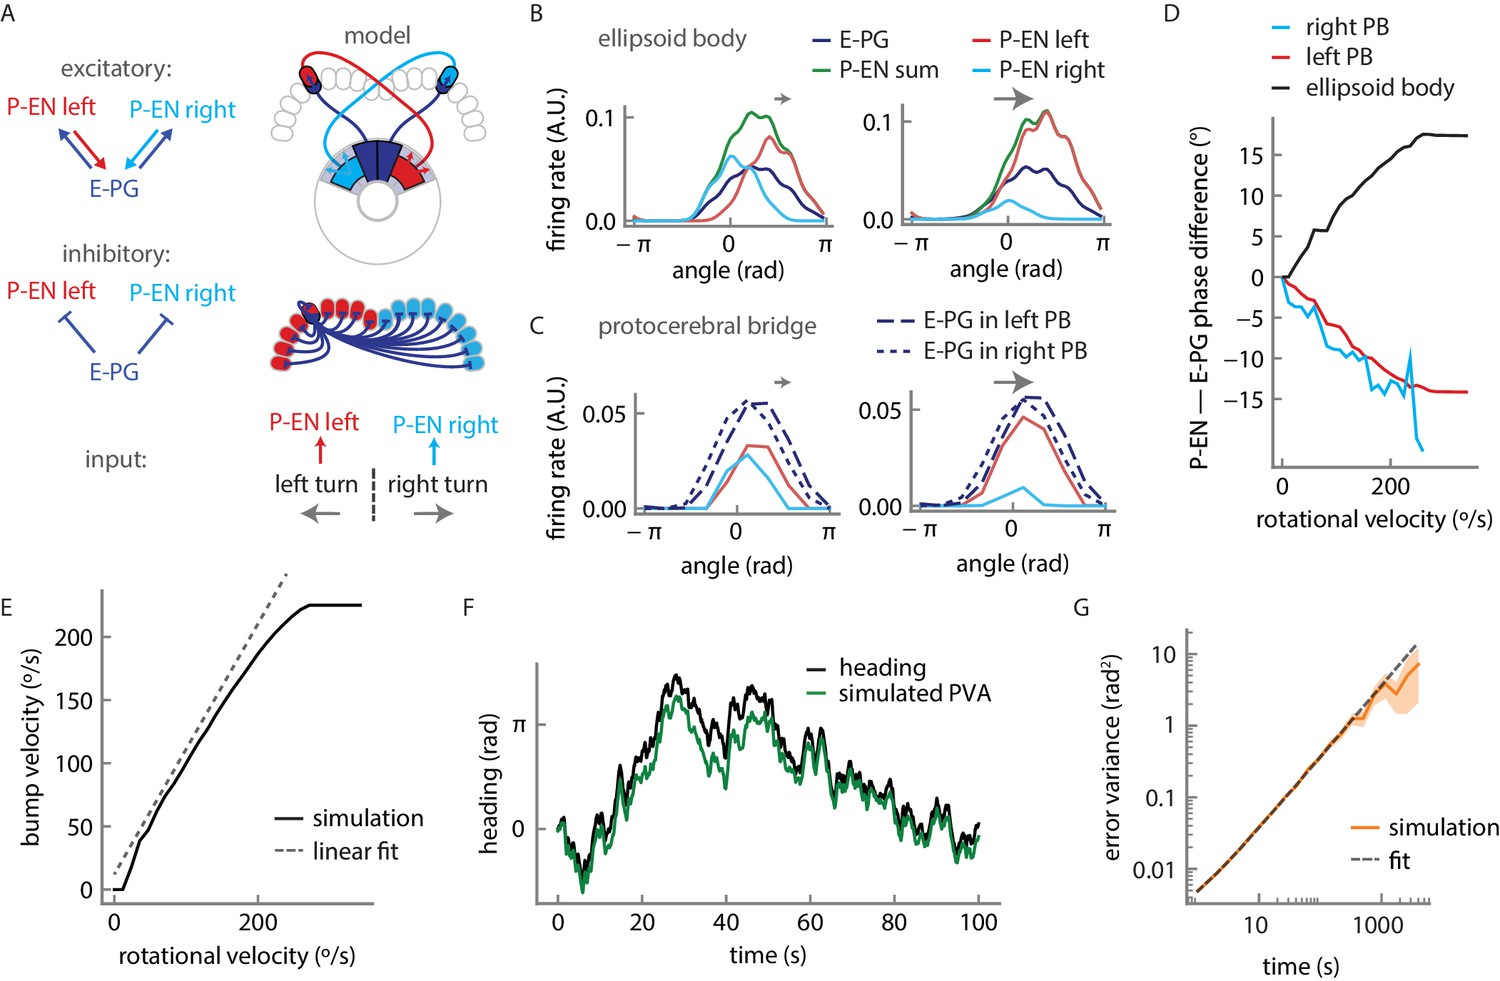 Angular Velocity Integration In A Fly Heading Circuit Elife Donut Ct Wiring Diagram Firing Rate Model For Mechanism Displaying Persistent Localized Activity And